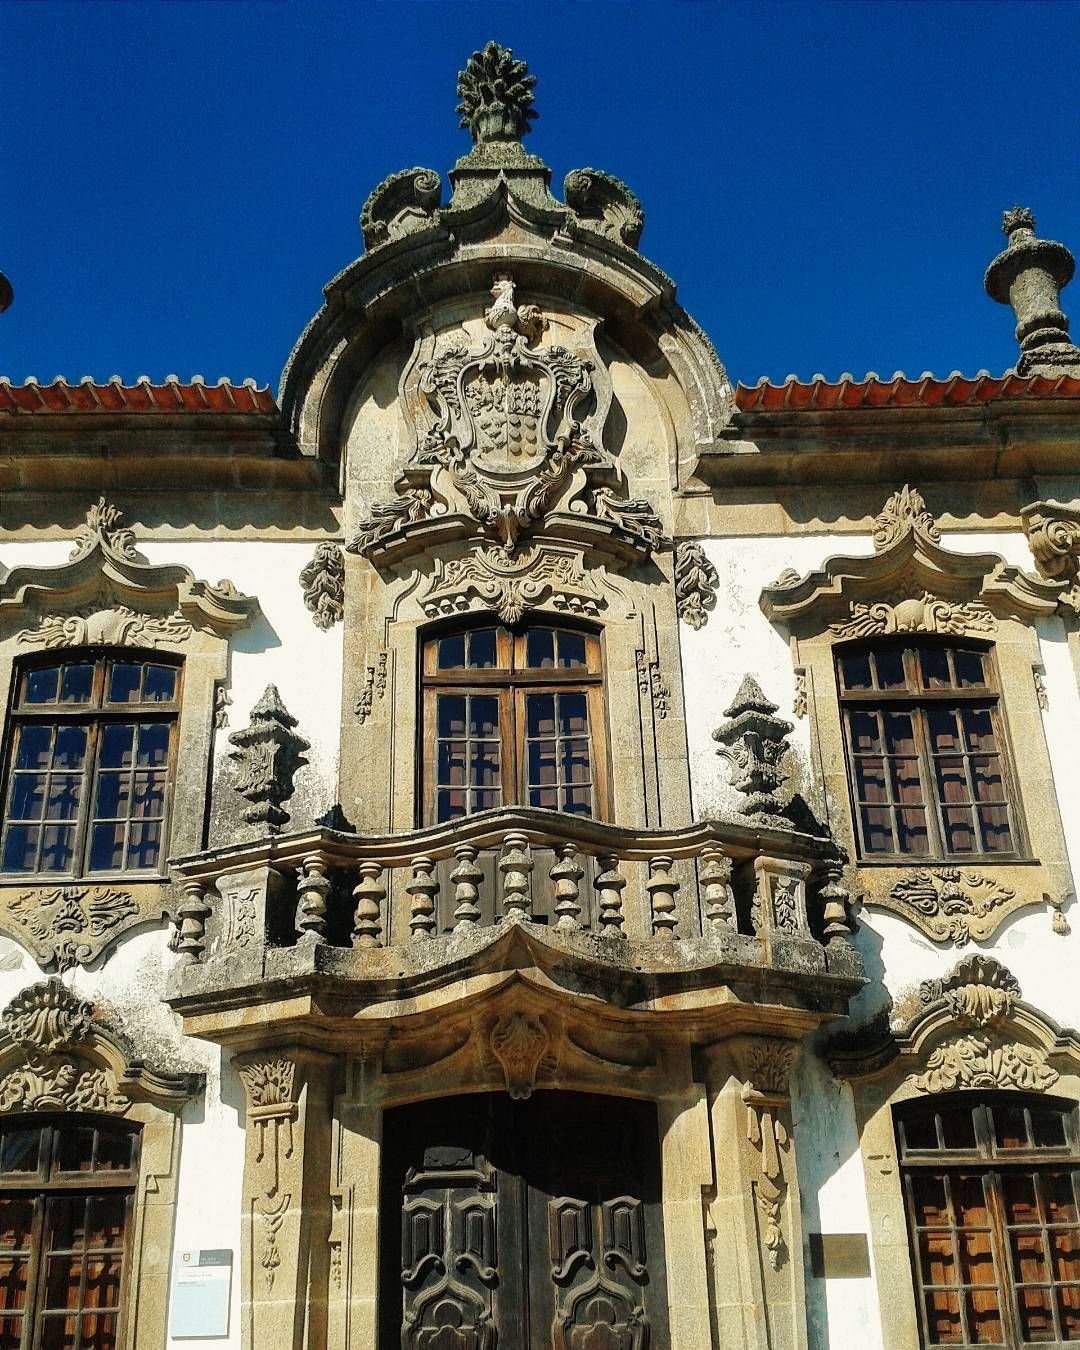 These architectural details on the tribunal building (now museum) at São João da Pasqueira caught my eye. #DoorsOfPortugal #DouroValley